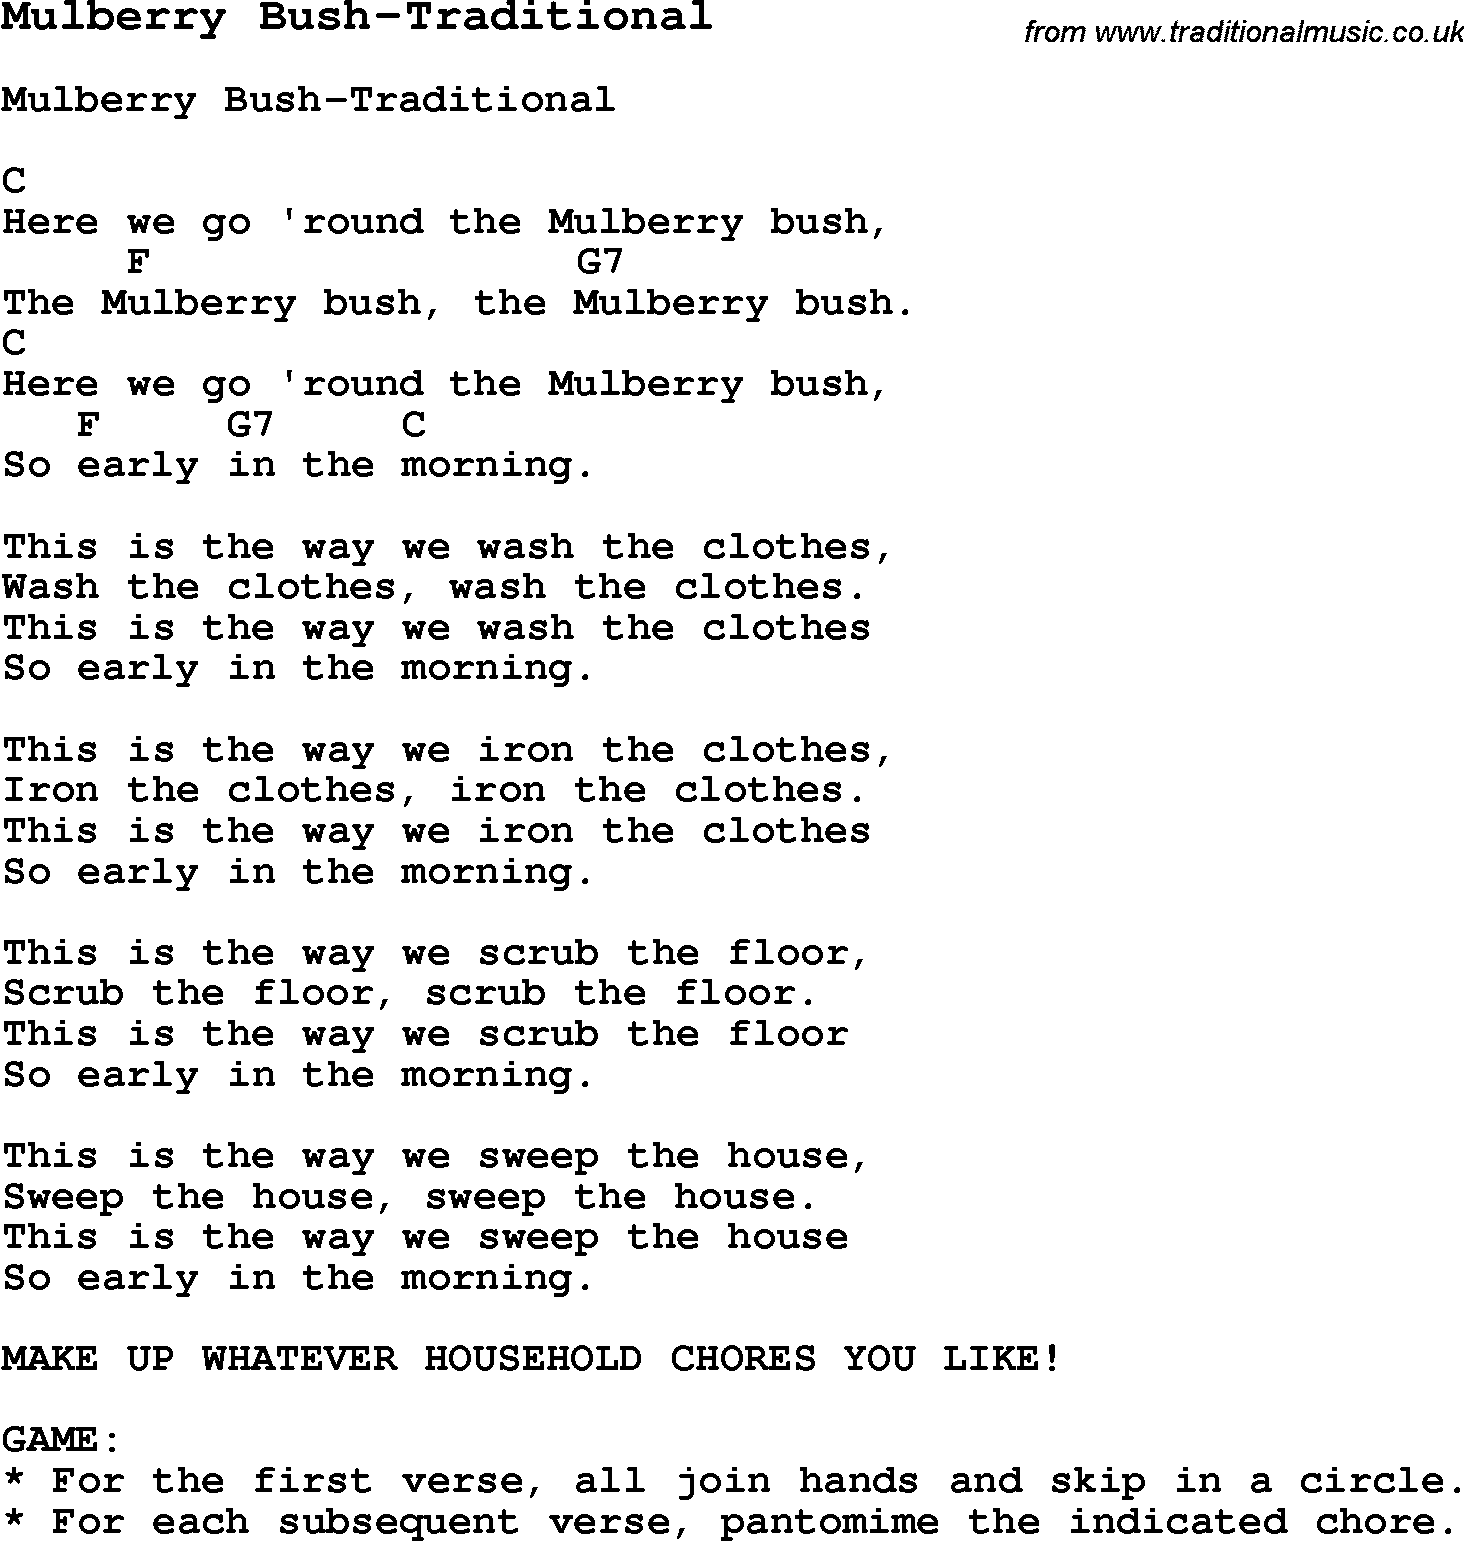 Summer Camp Song Mulberry Bush Traditional With Lyrics And Chords